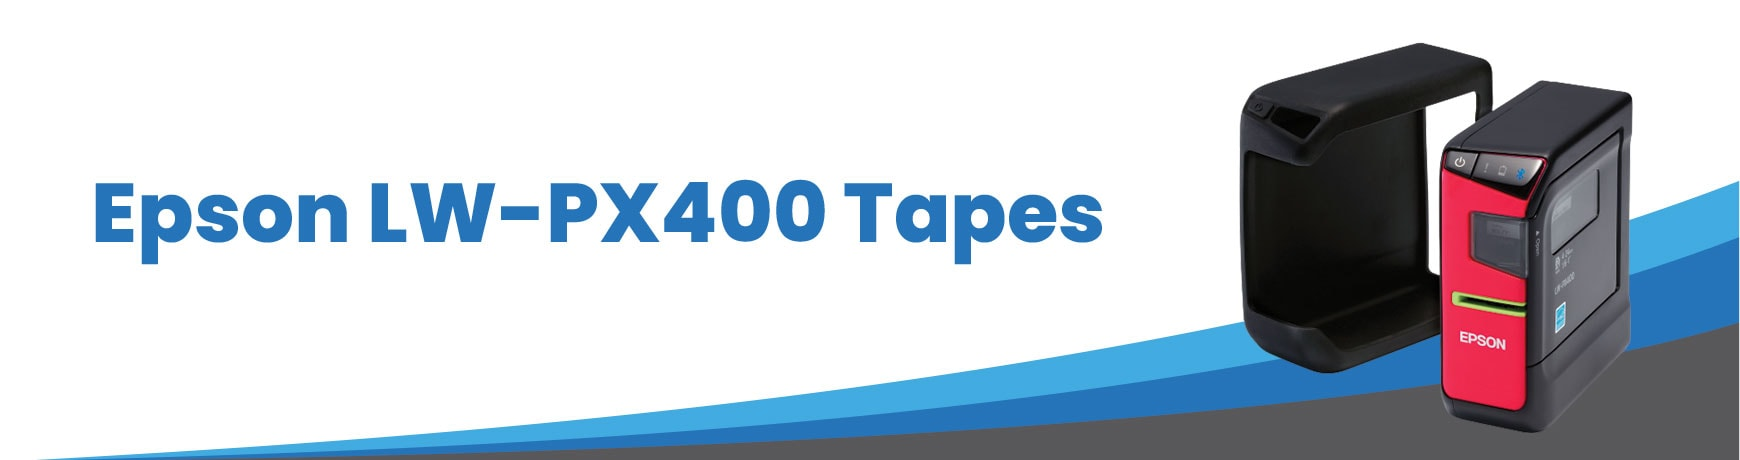 Epson LW-PX400 Tapes